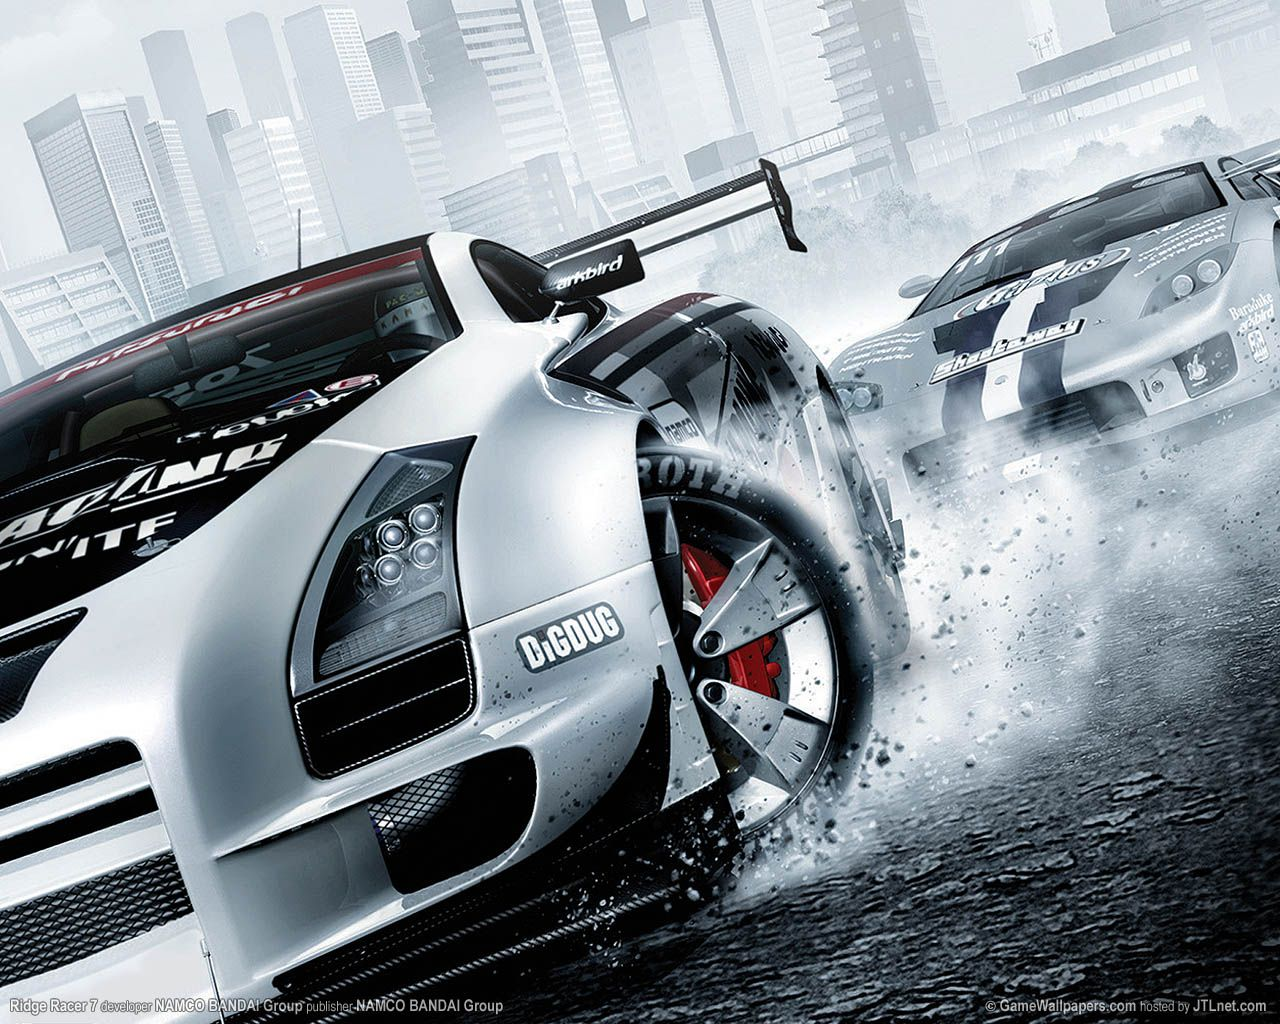 The Most Wanted Wallpaper Games Wallpapers Pinterest - Cool cars games online